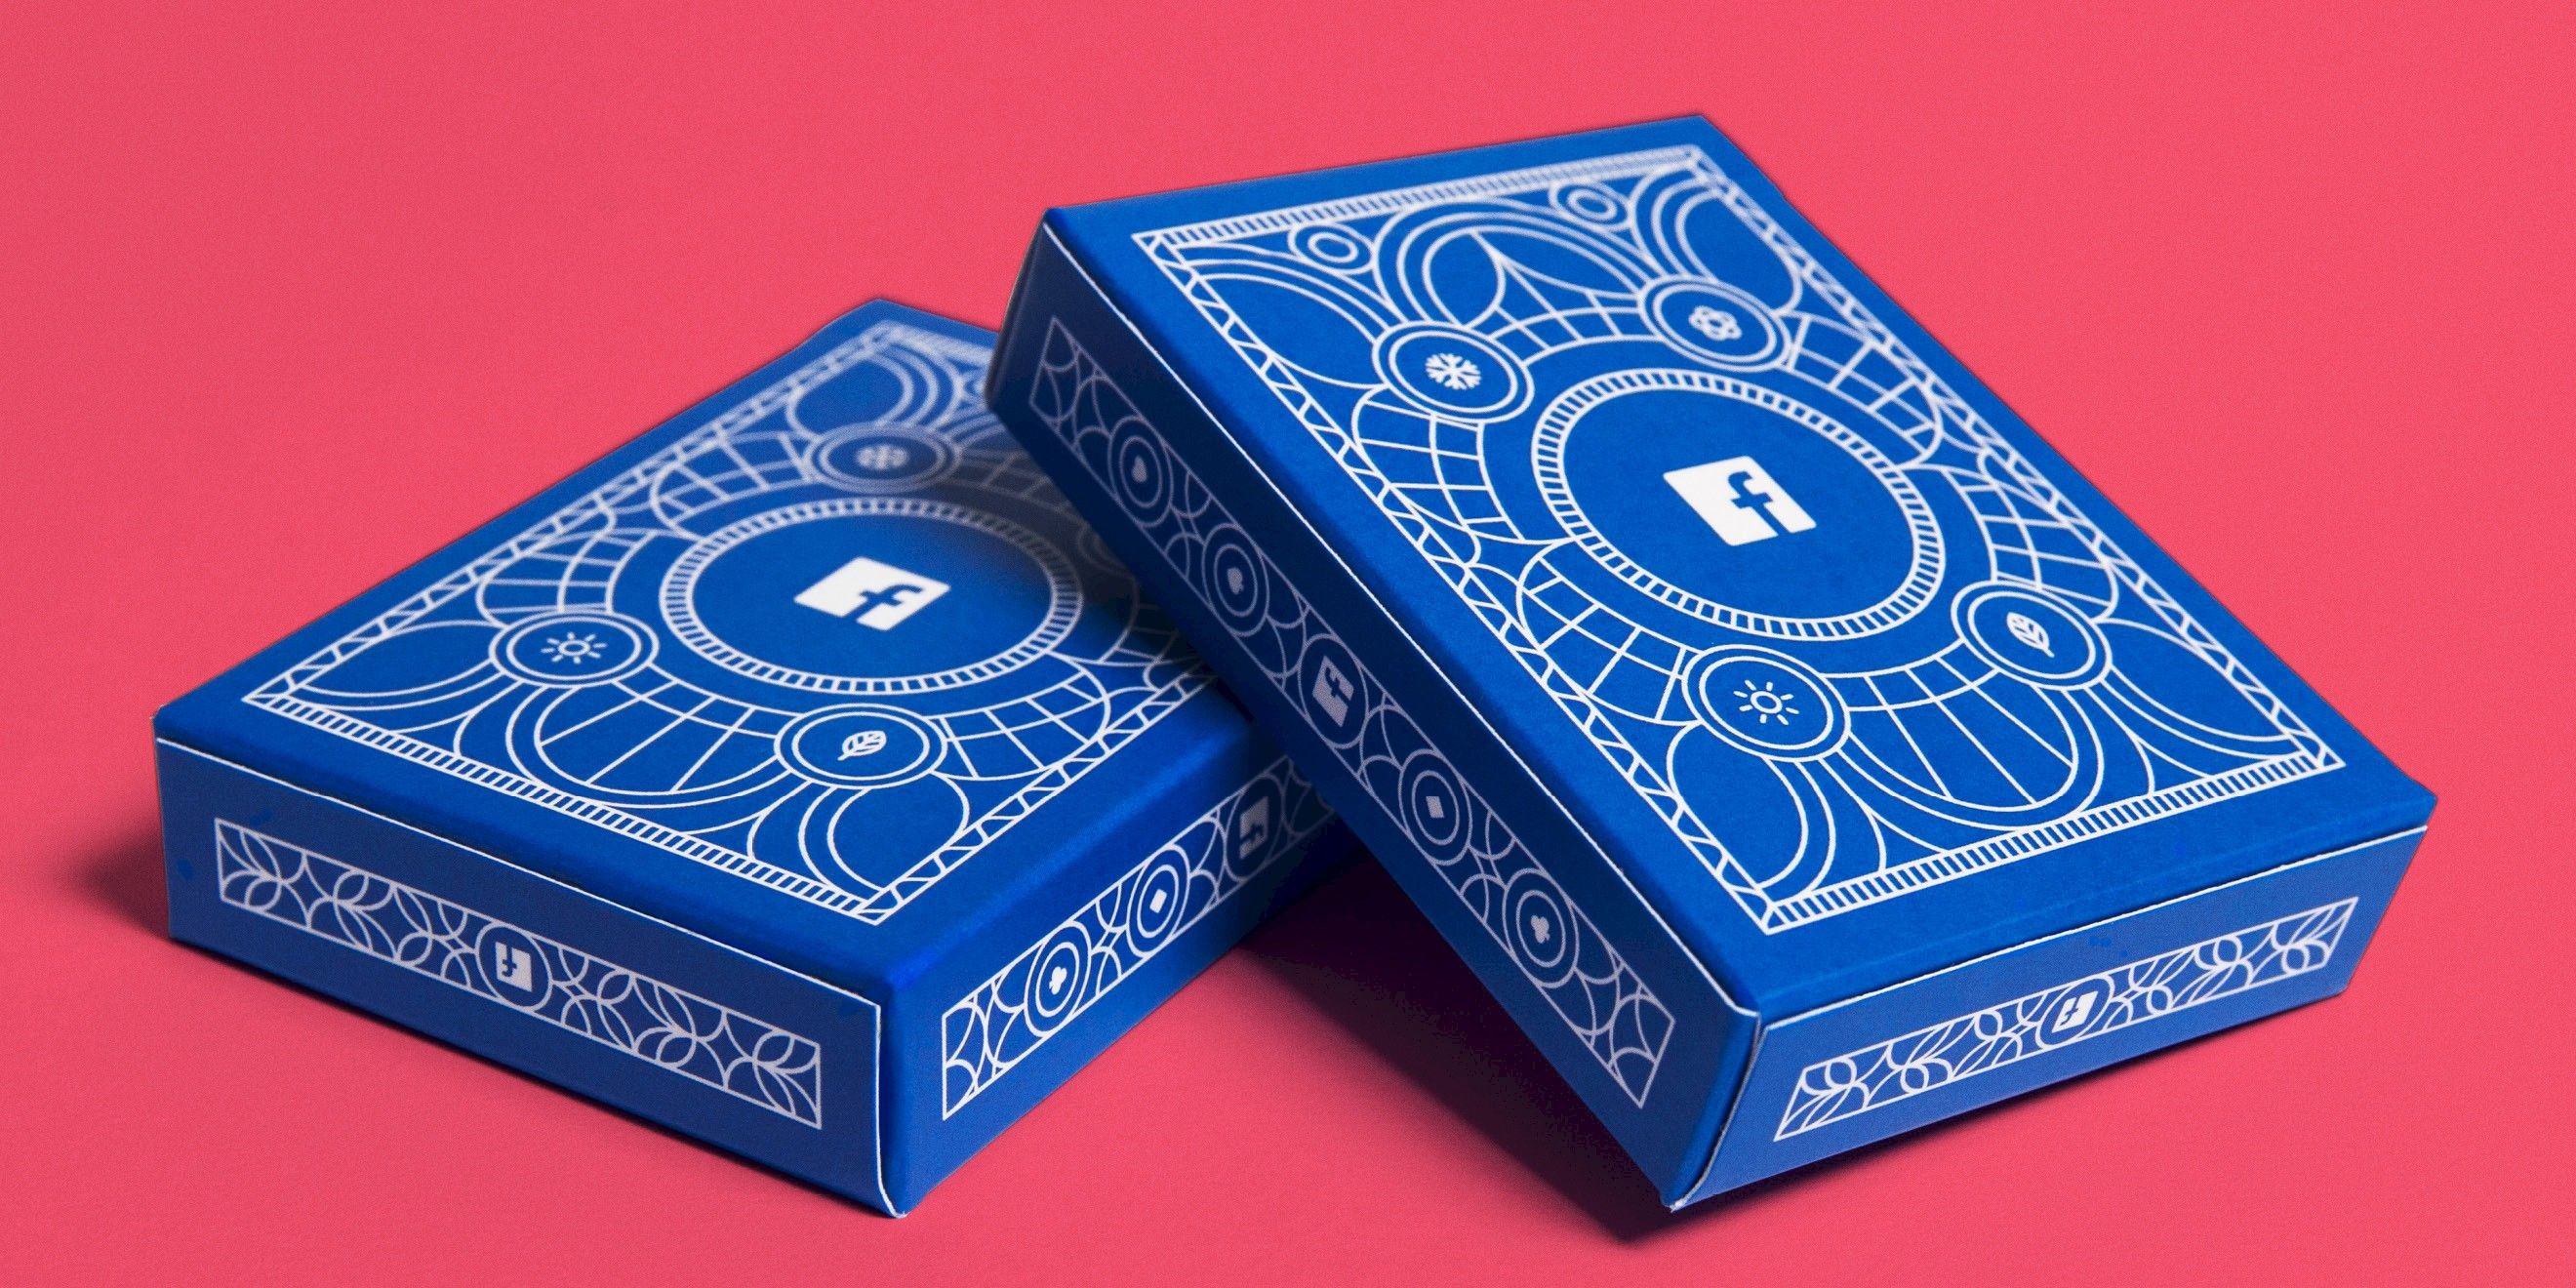 Facebook B2B playing cards deck designed by Human After All